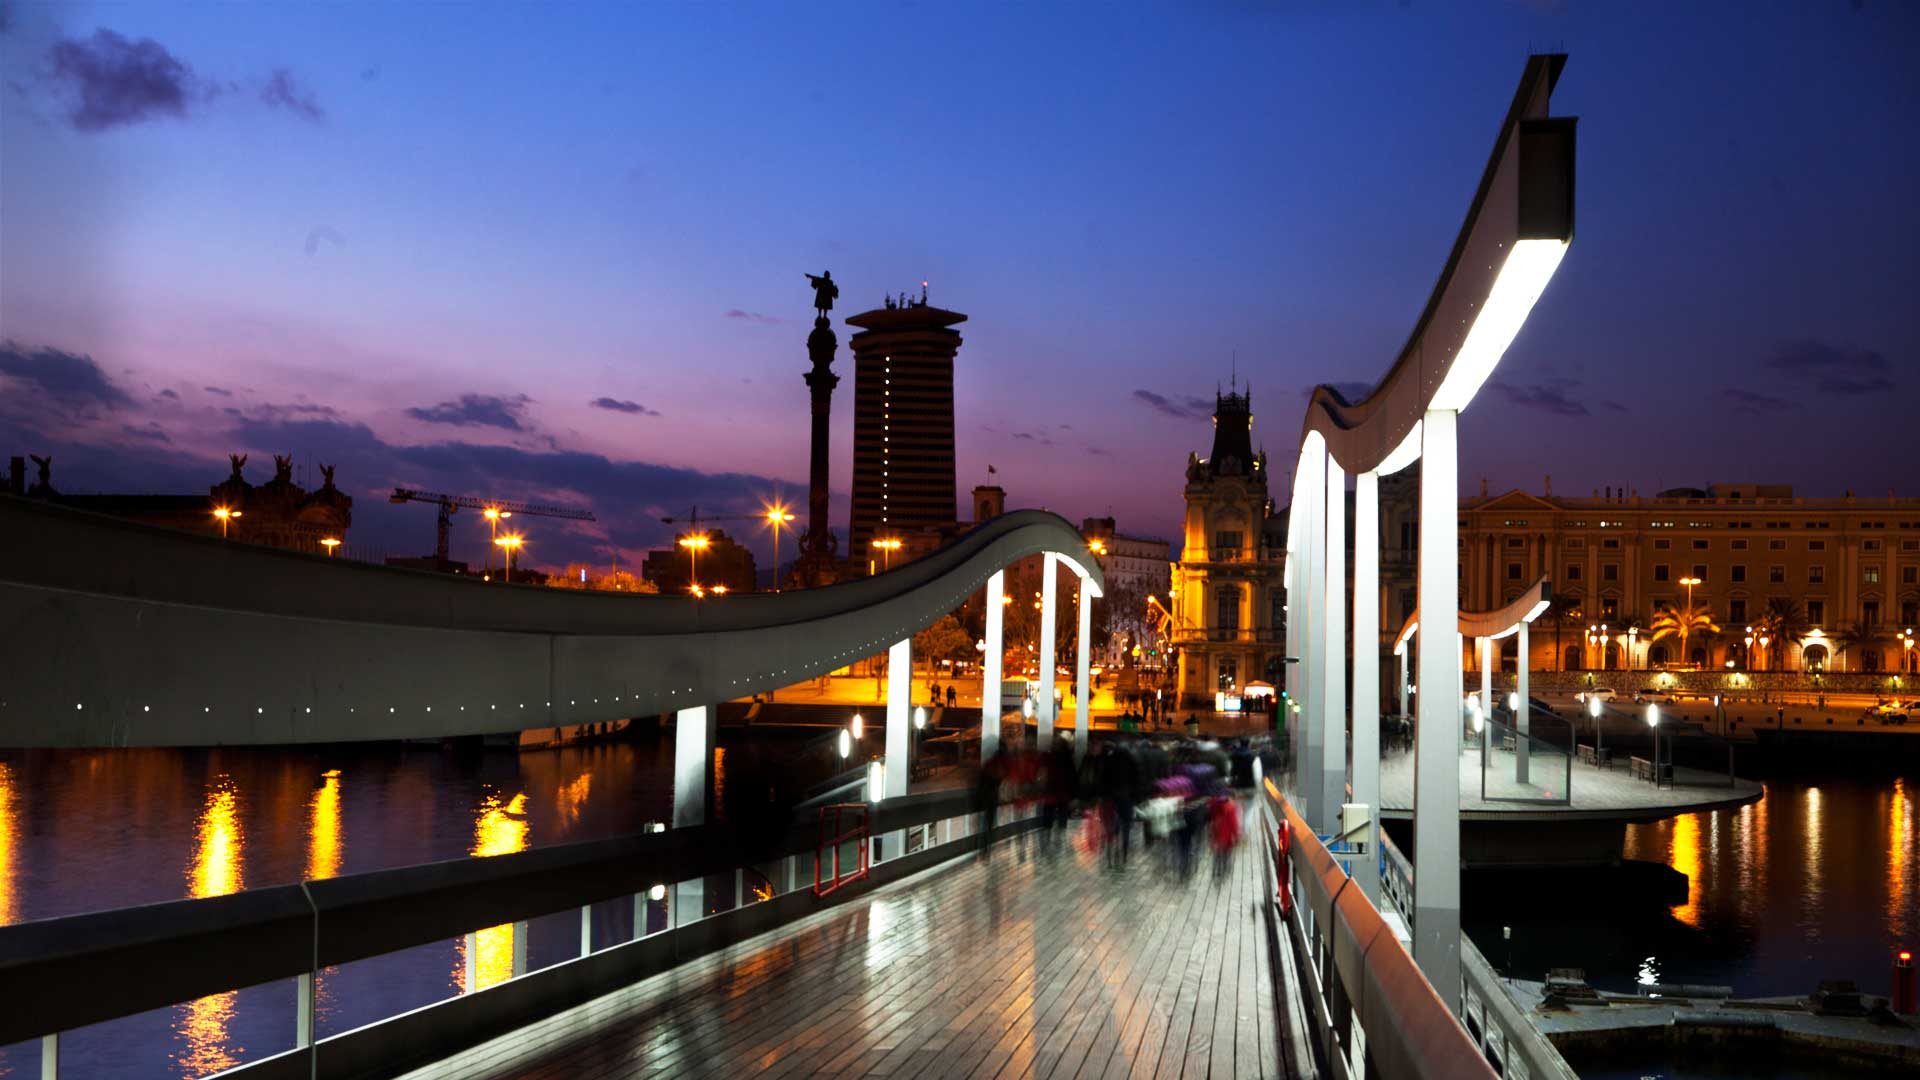 5 Plans for a Night Out in Barcelona - What to do in Barcelona